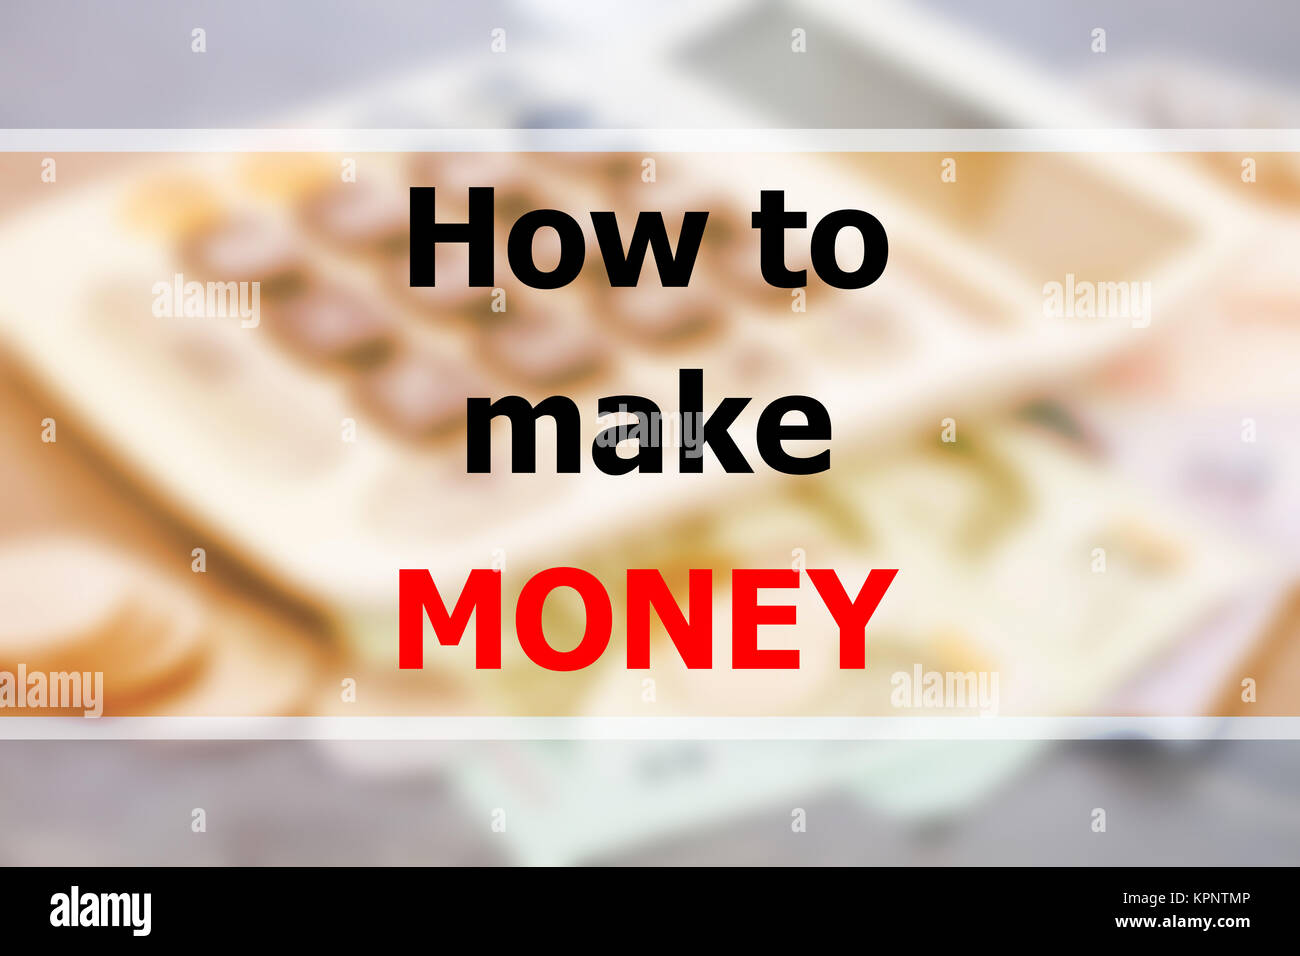 Inspirational quote of how to make money - Stock Image